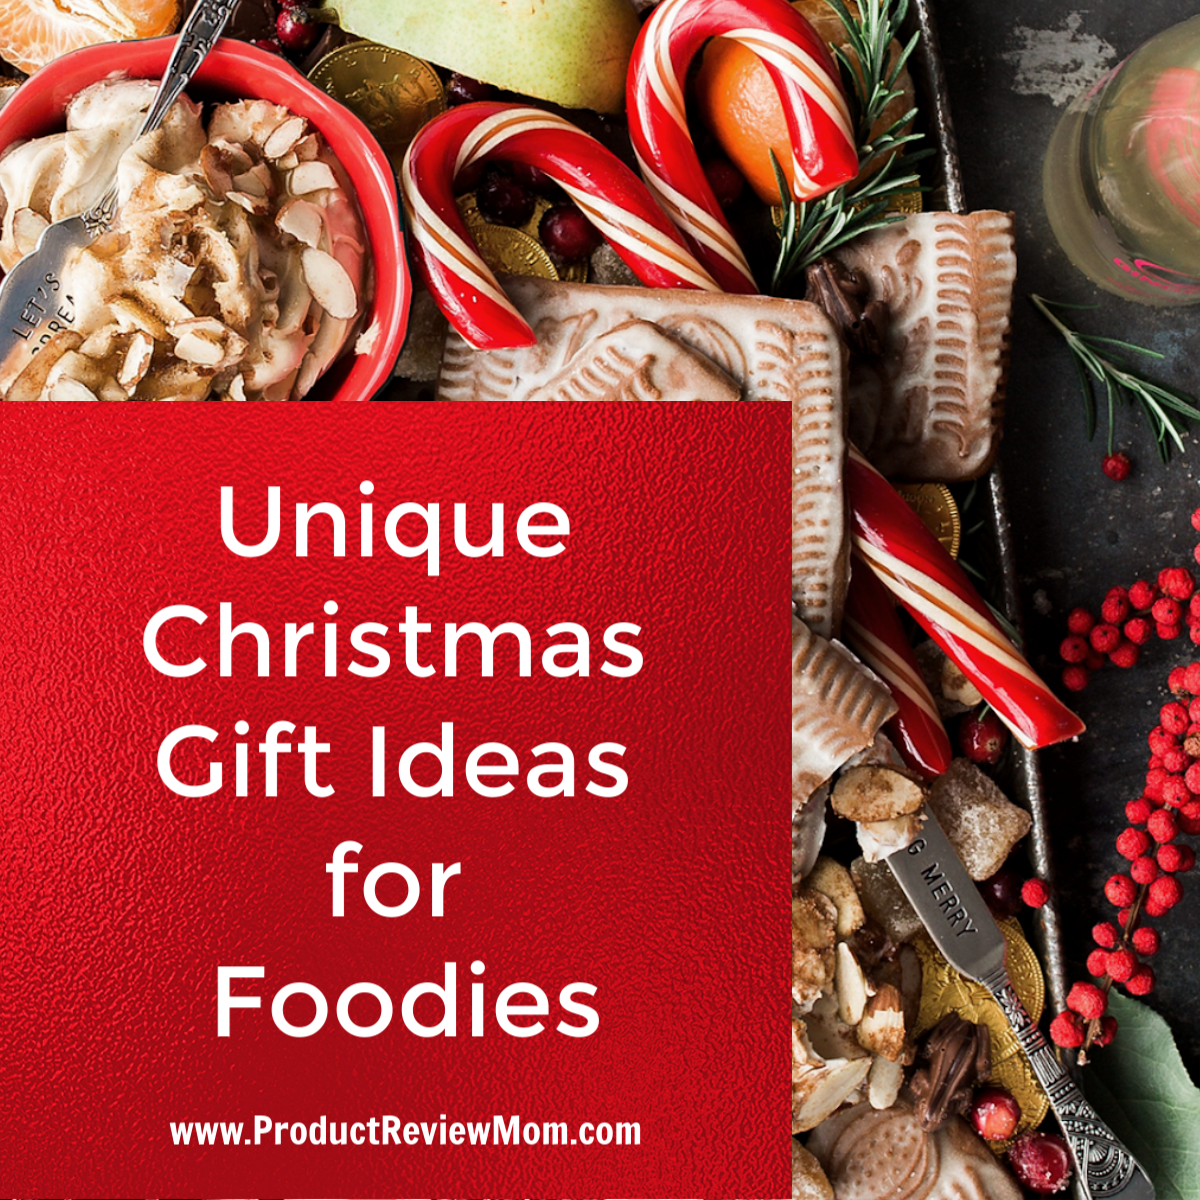 Unique Christmas Gift Ideas For Foodies That They Will Love